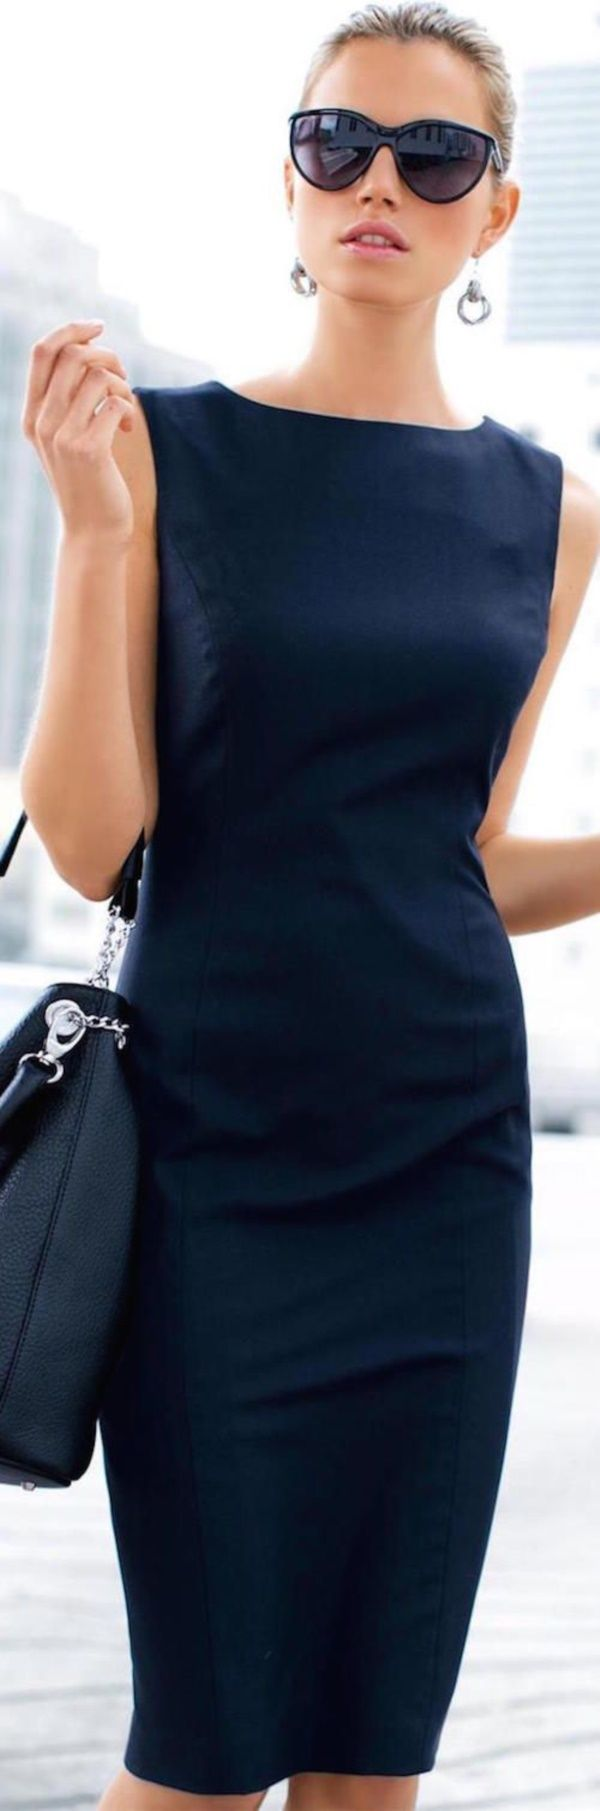 Business travel outfits For WoMen0341